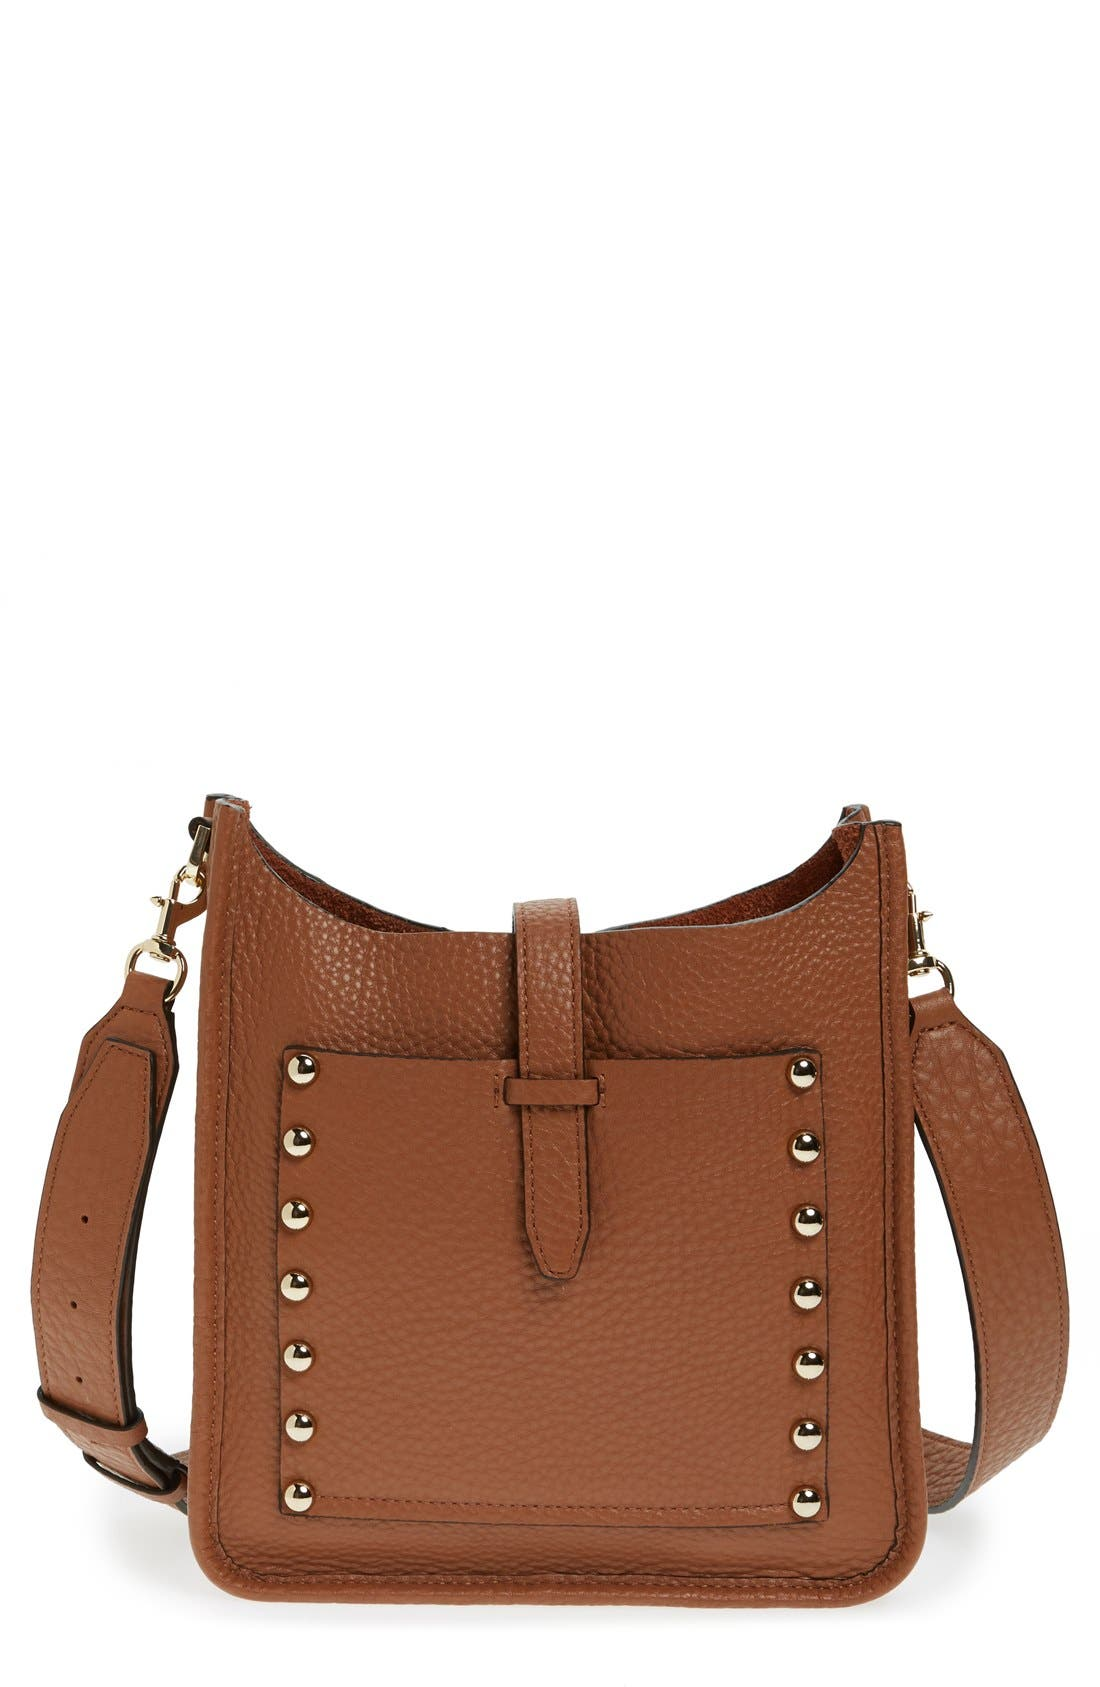 Main Image - Rebecca Minkoff Small 'Feed' Bag